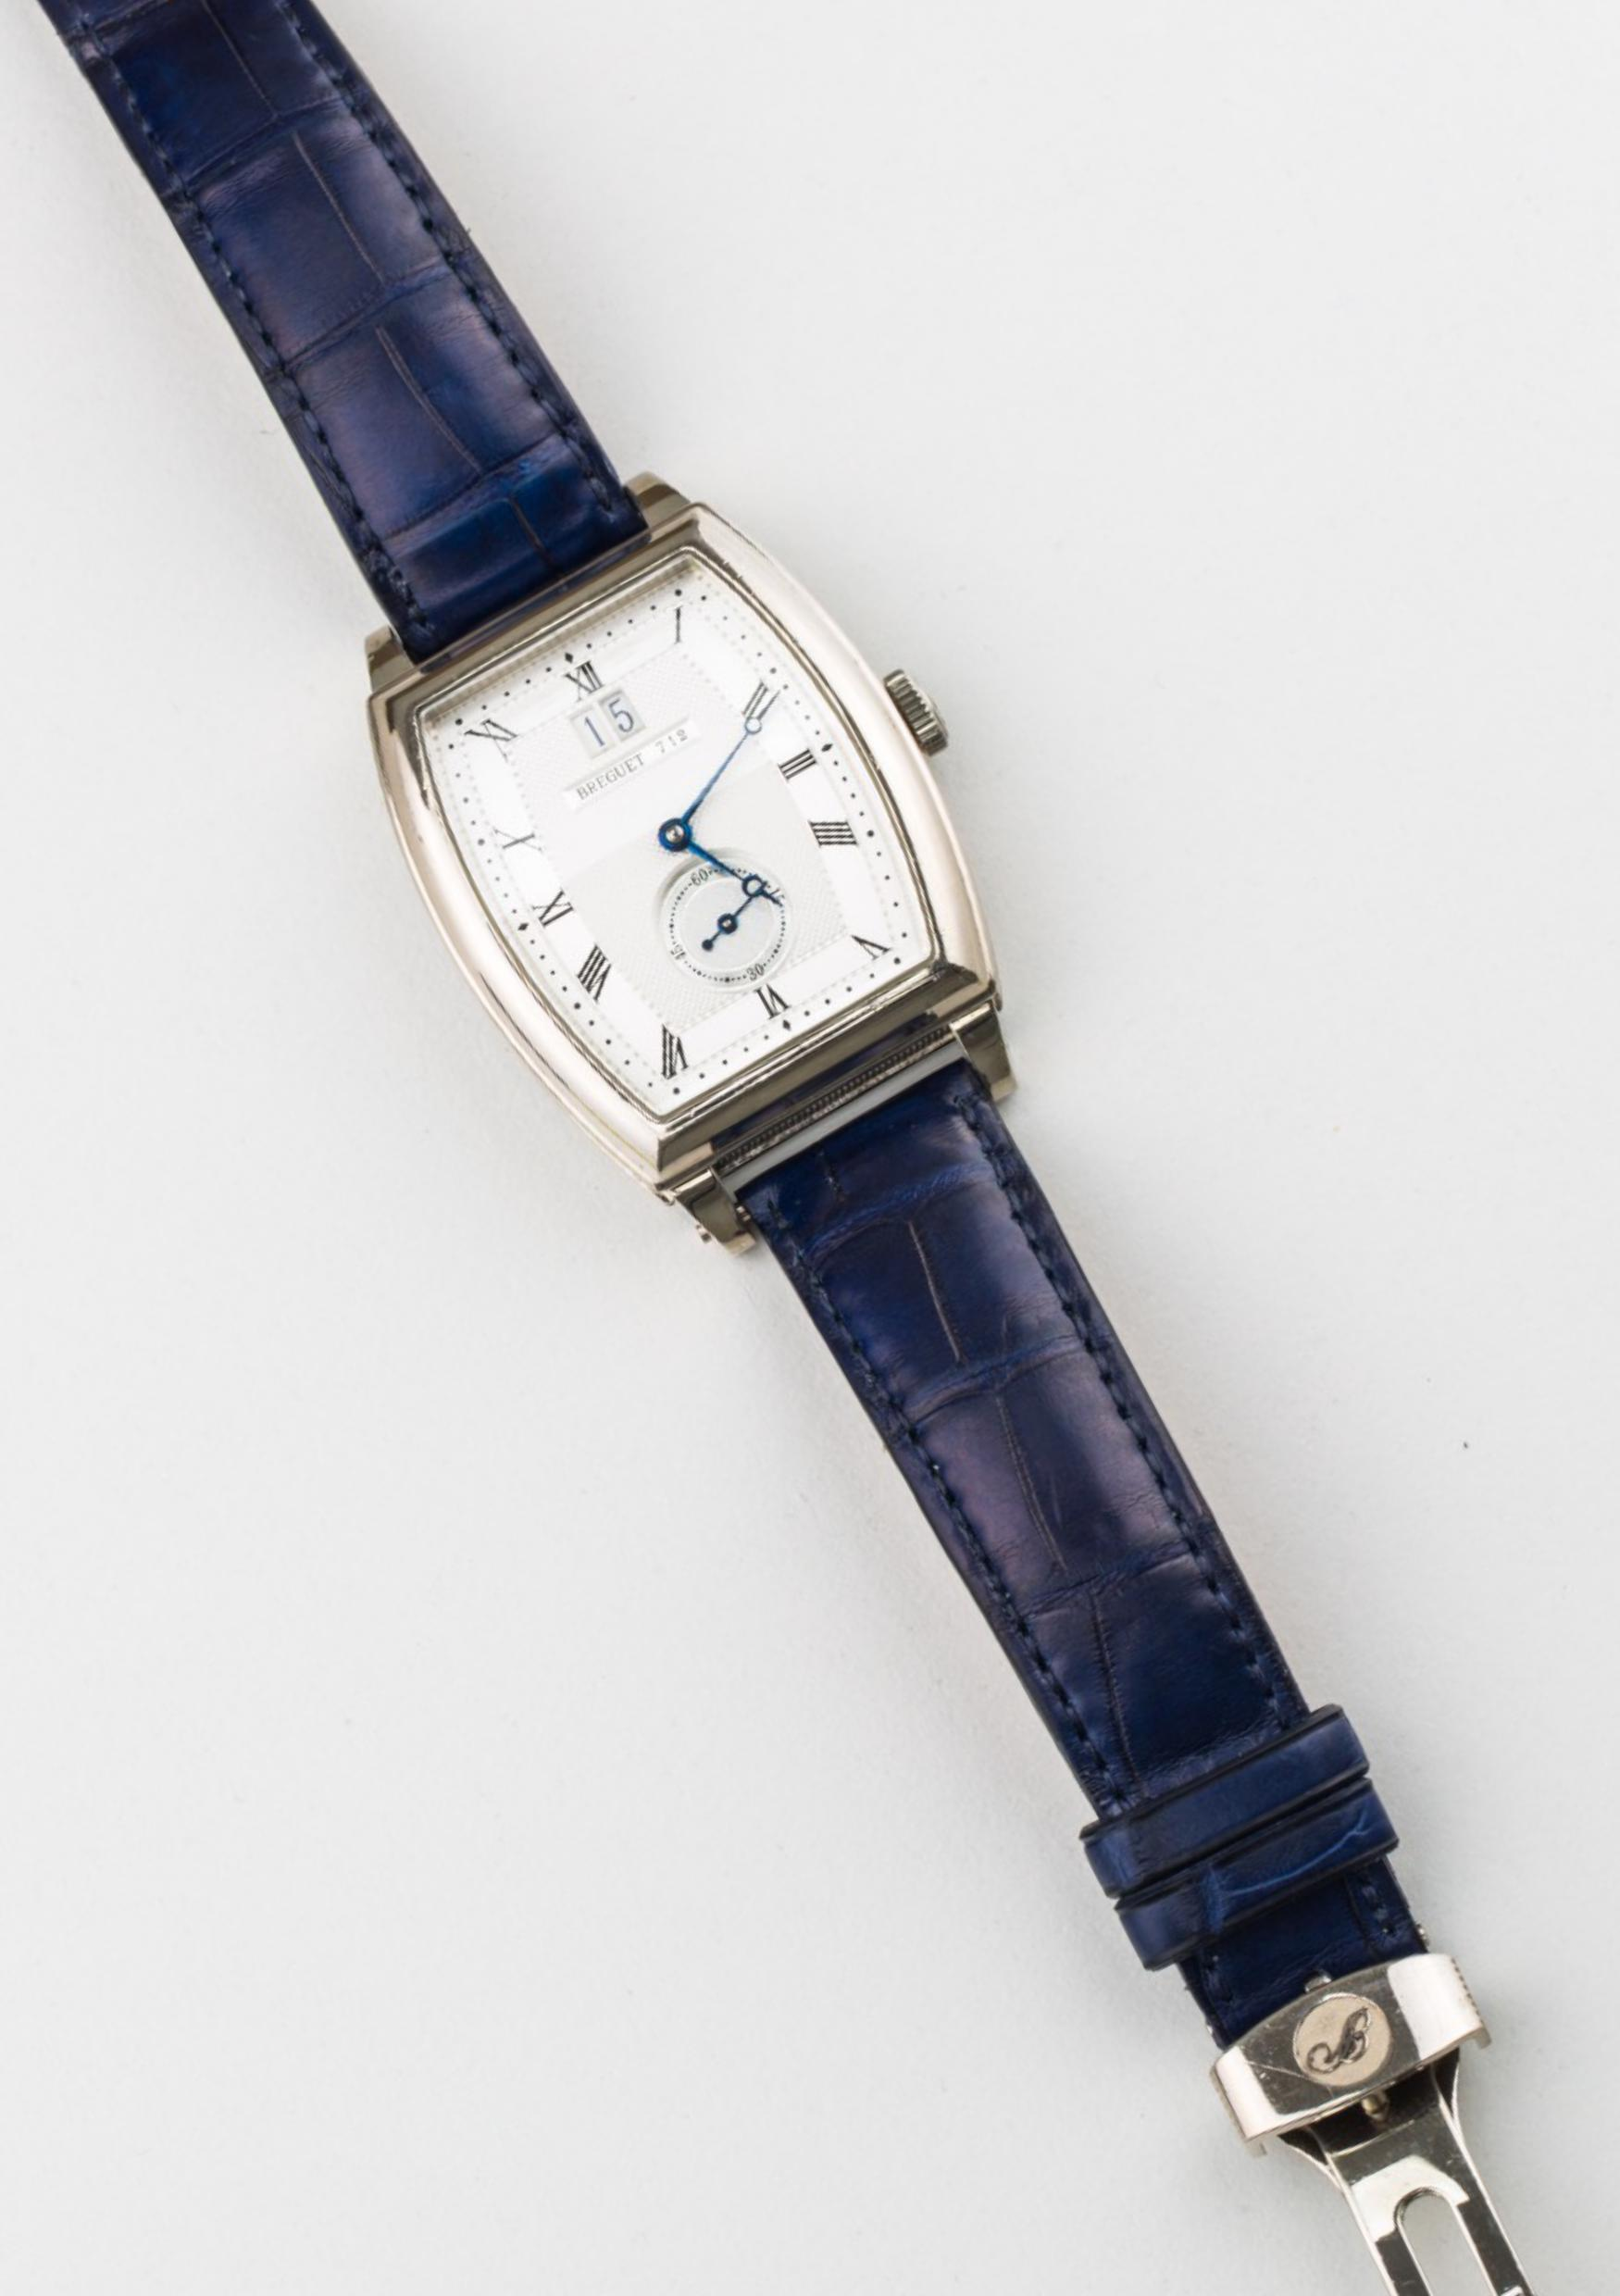 Lot 26 - Heritage Big Date, 18K white gold case